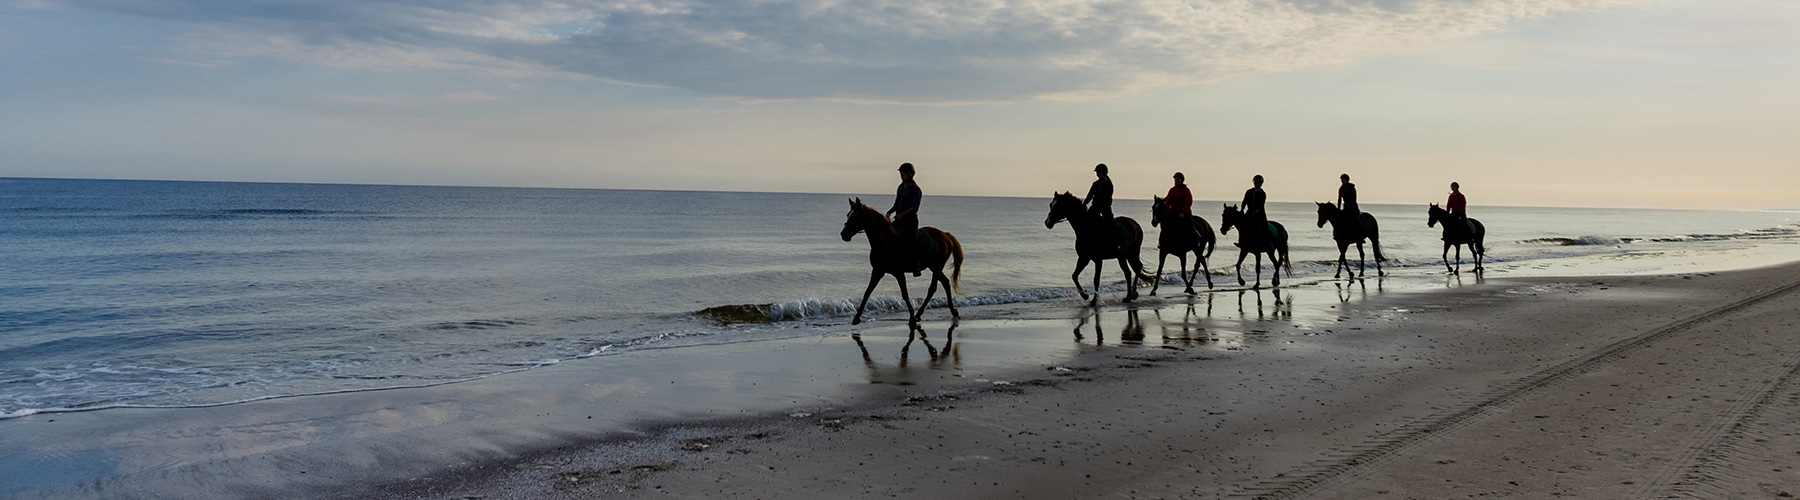 Horse Riding at Comporta Beach